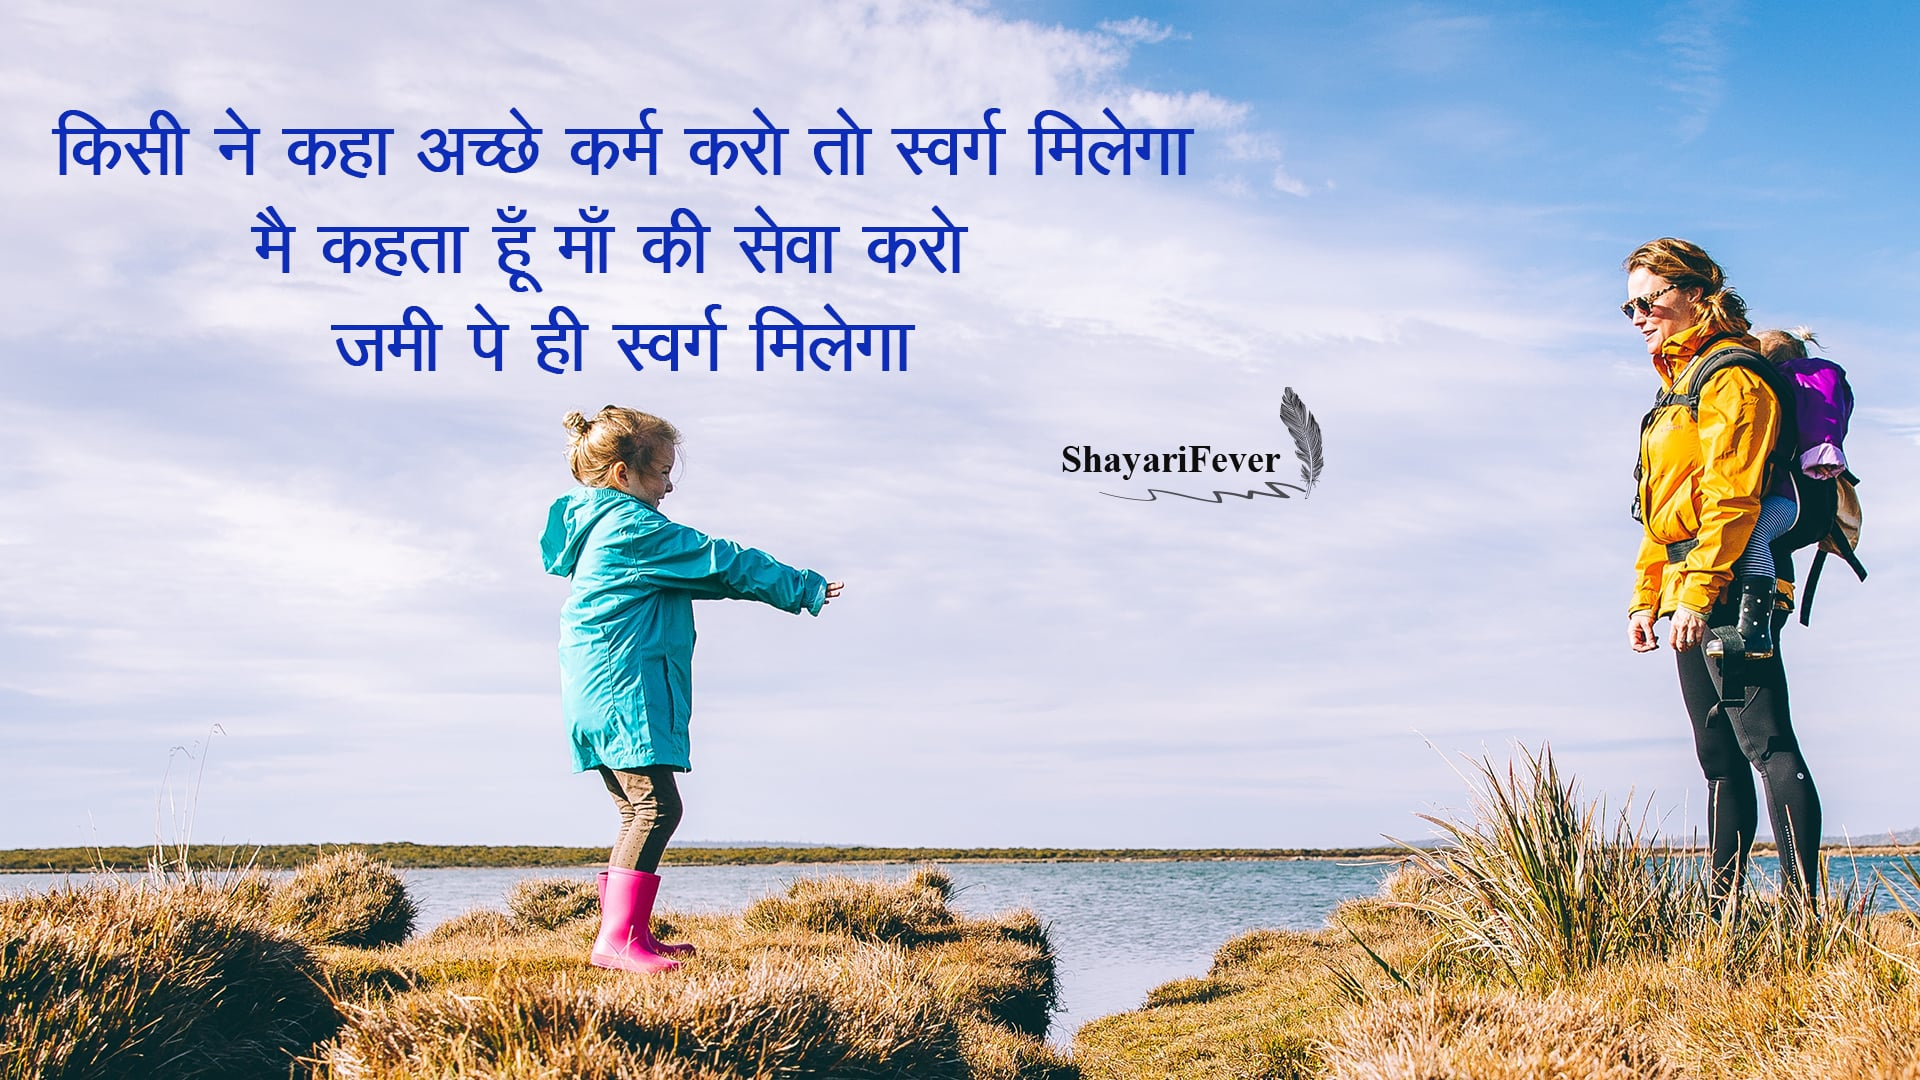 Quotes On Mother In Hindi With Image